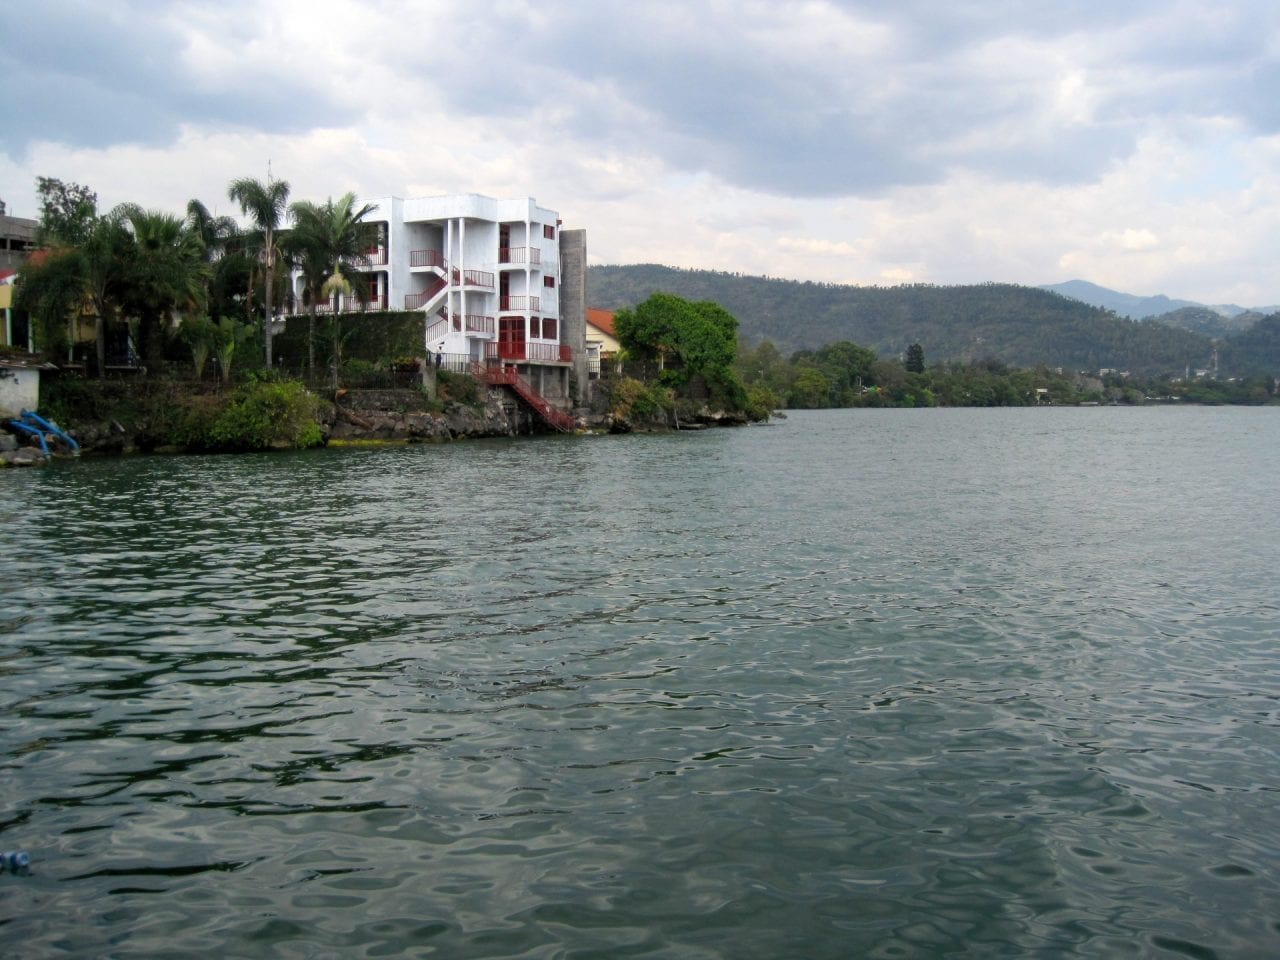 House lake kivu dangerous